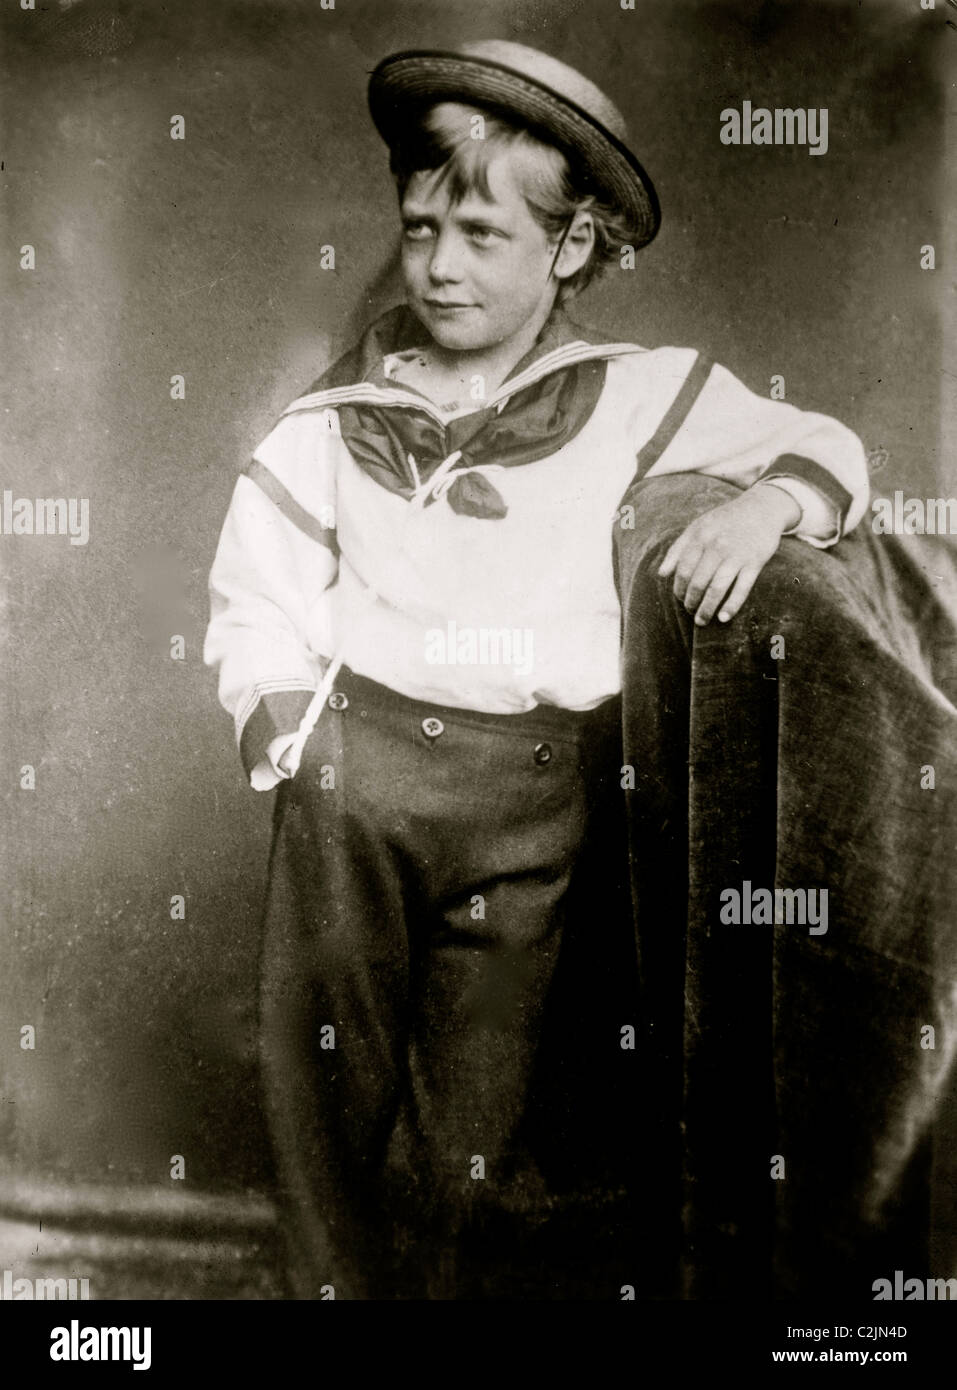 King George as a Boy - Stock Image